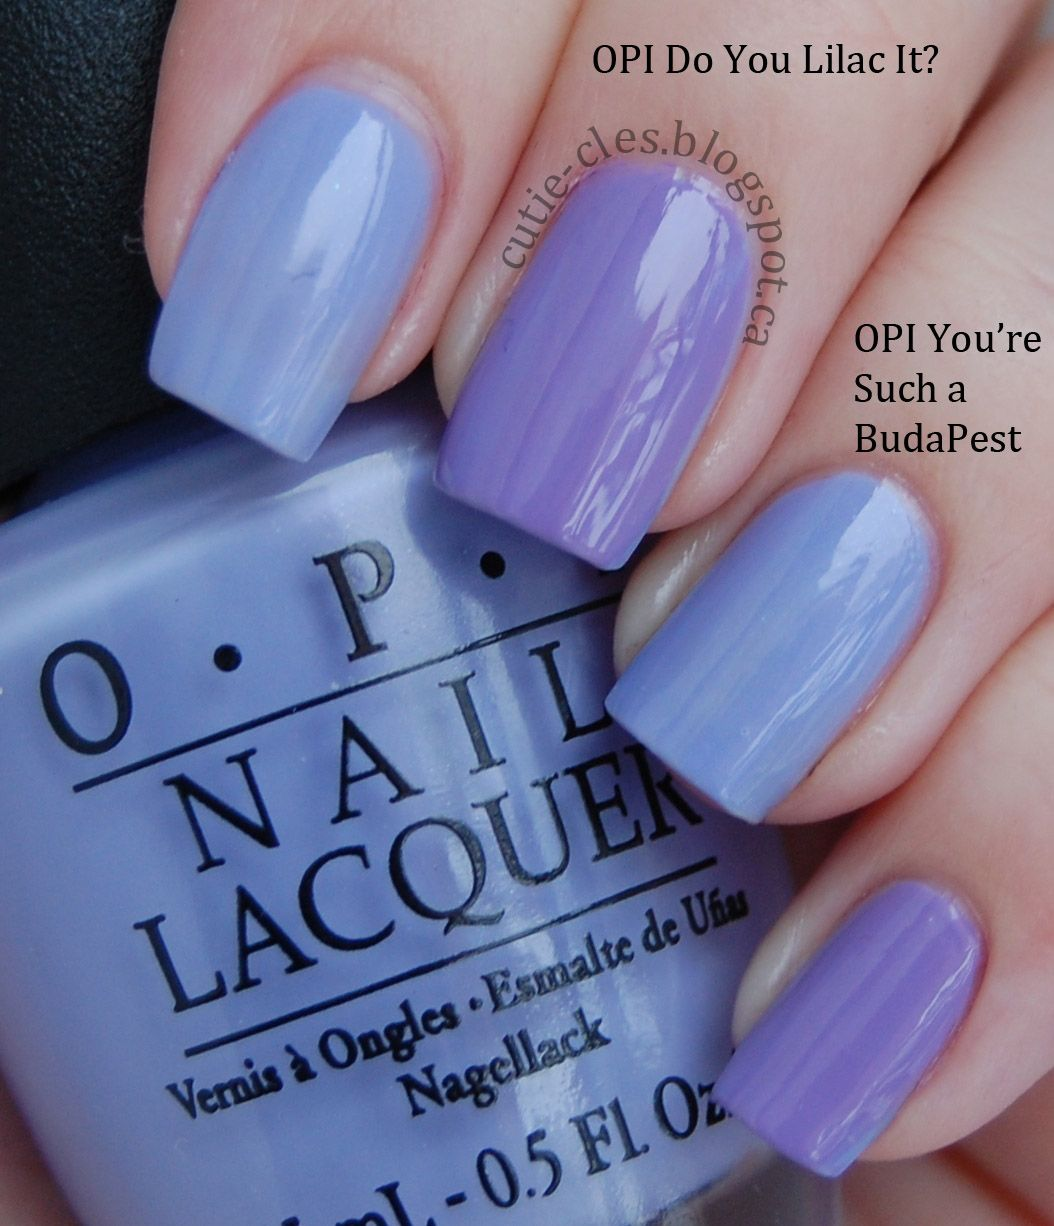 OPI do you lilac it vs...